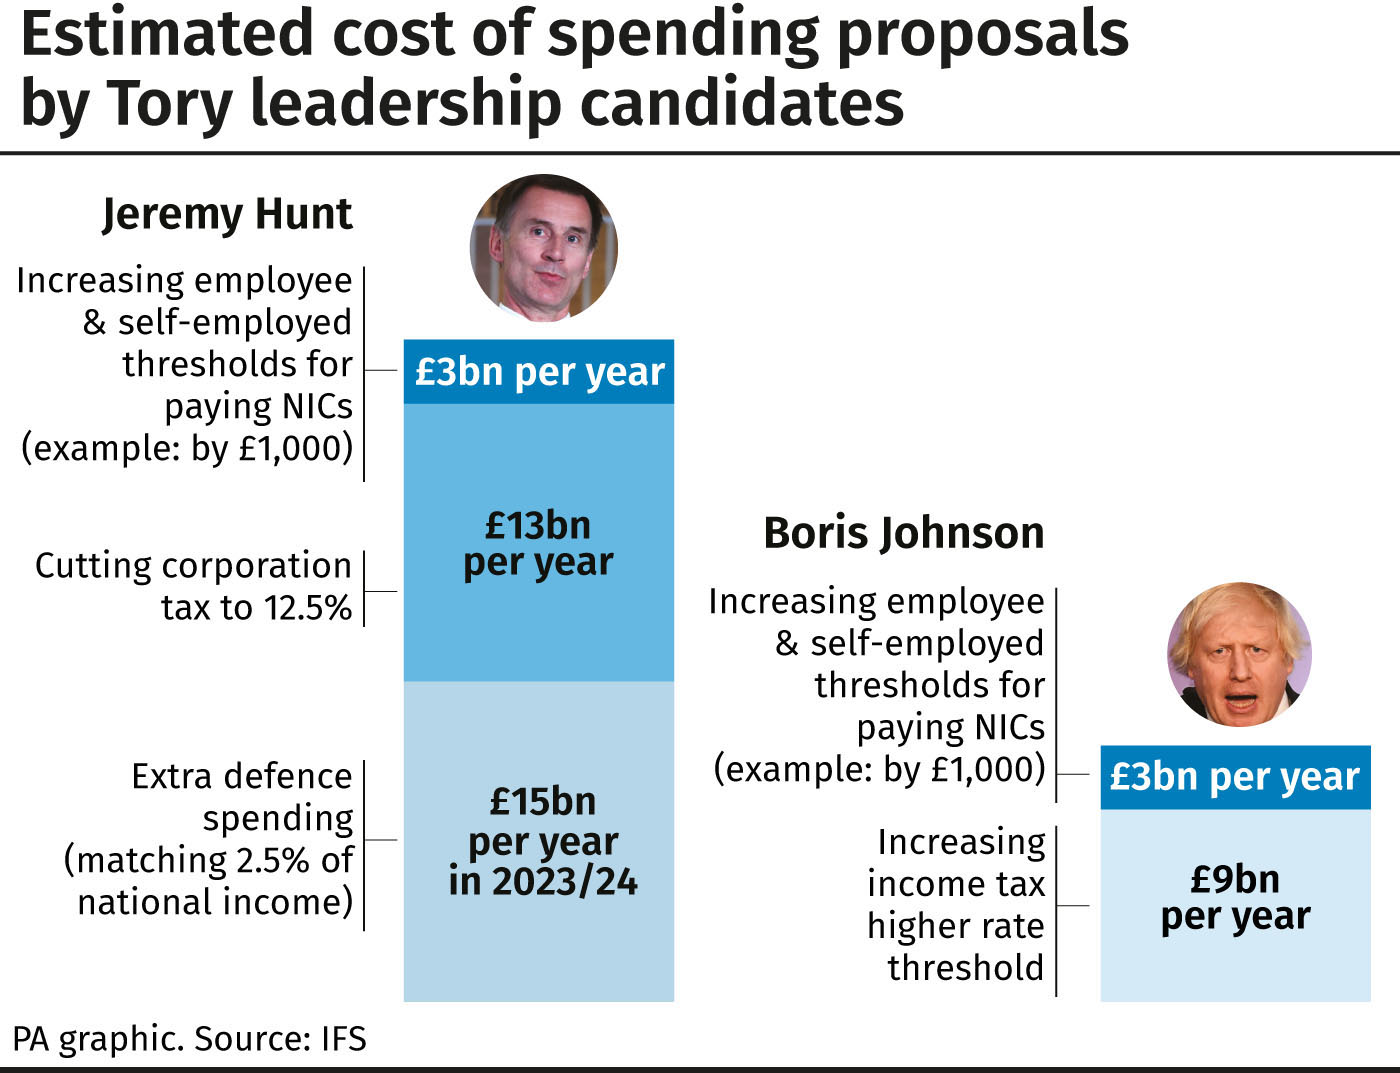 Estimated cost of spending proposals by Tory leadership candidates